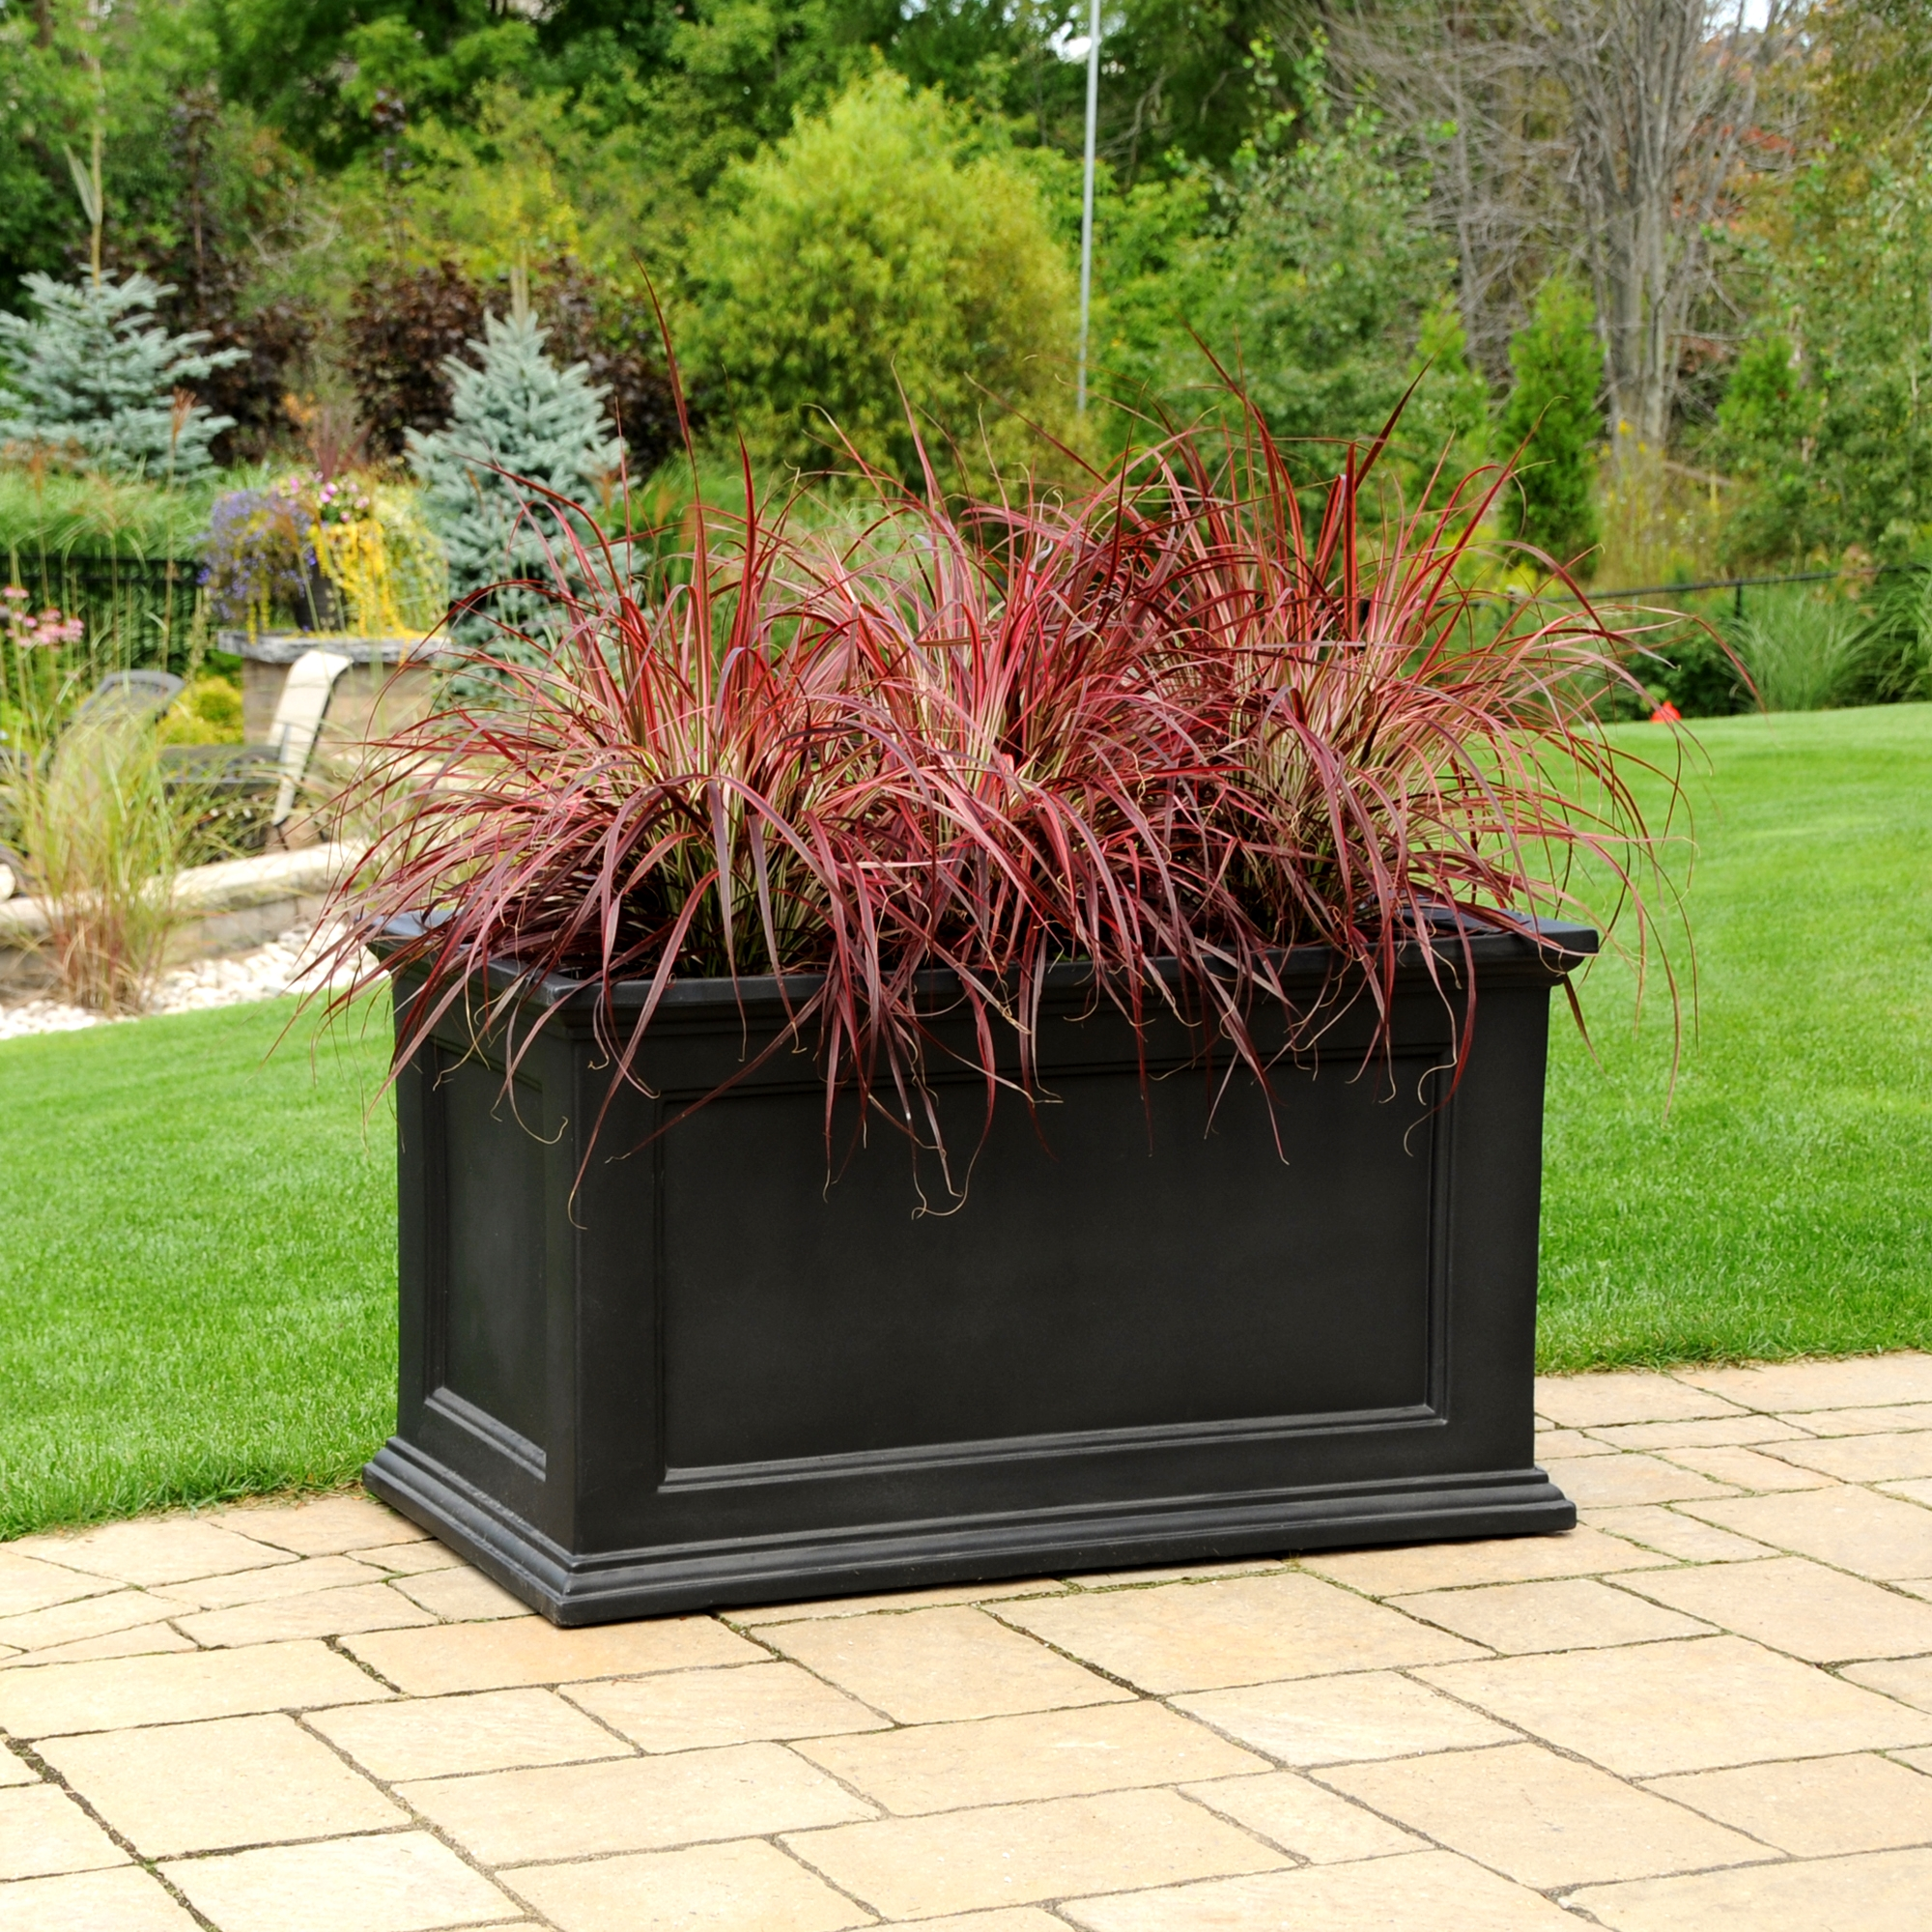 Fairfield Patio Planter 20x36 Black by Mayne Inc.